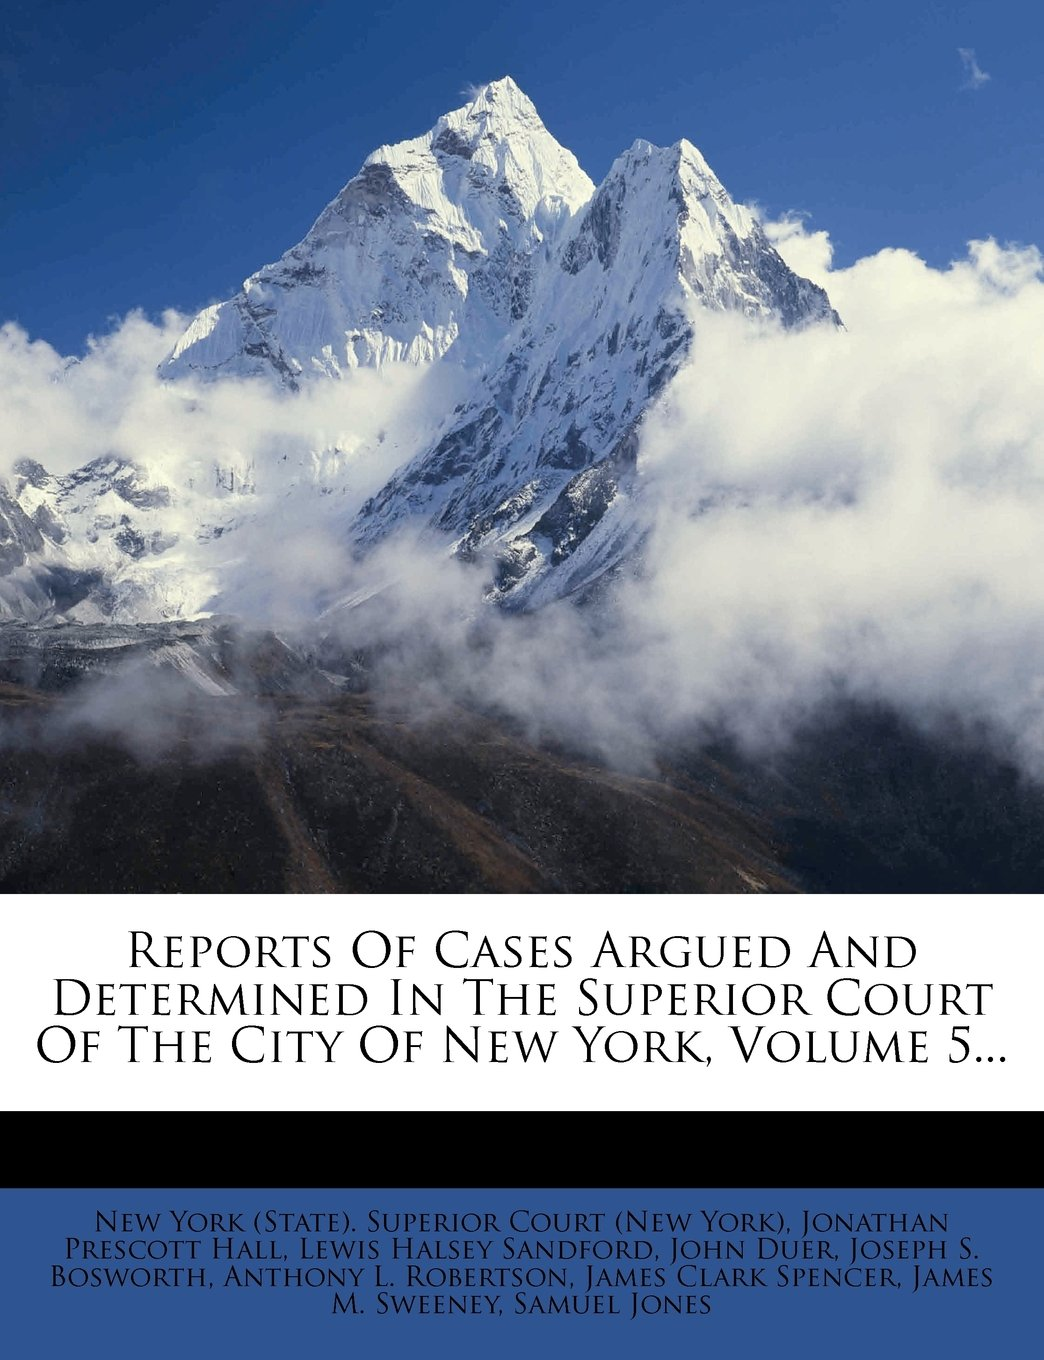 Reports Of Cases Argued And Determined In The Superior Court Of The City Of New York, Volume 5... pdf